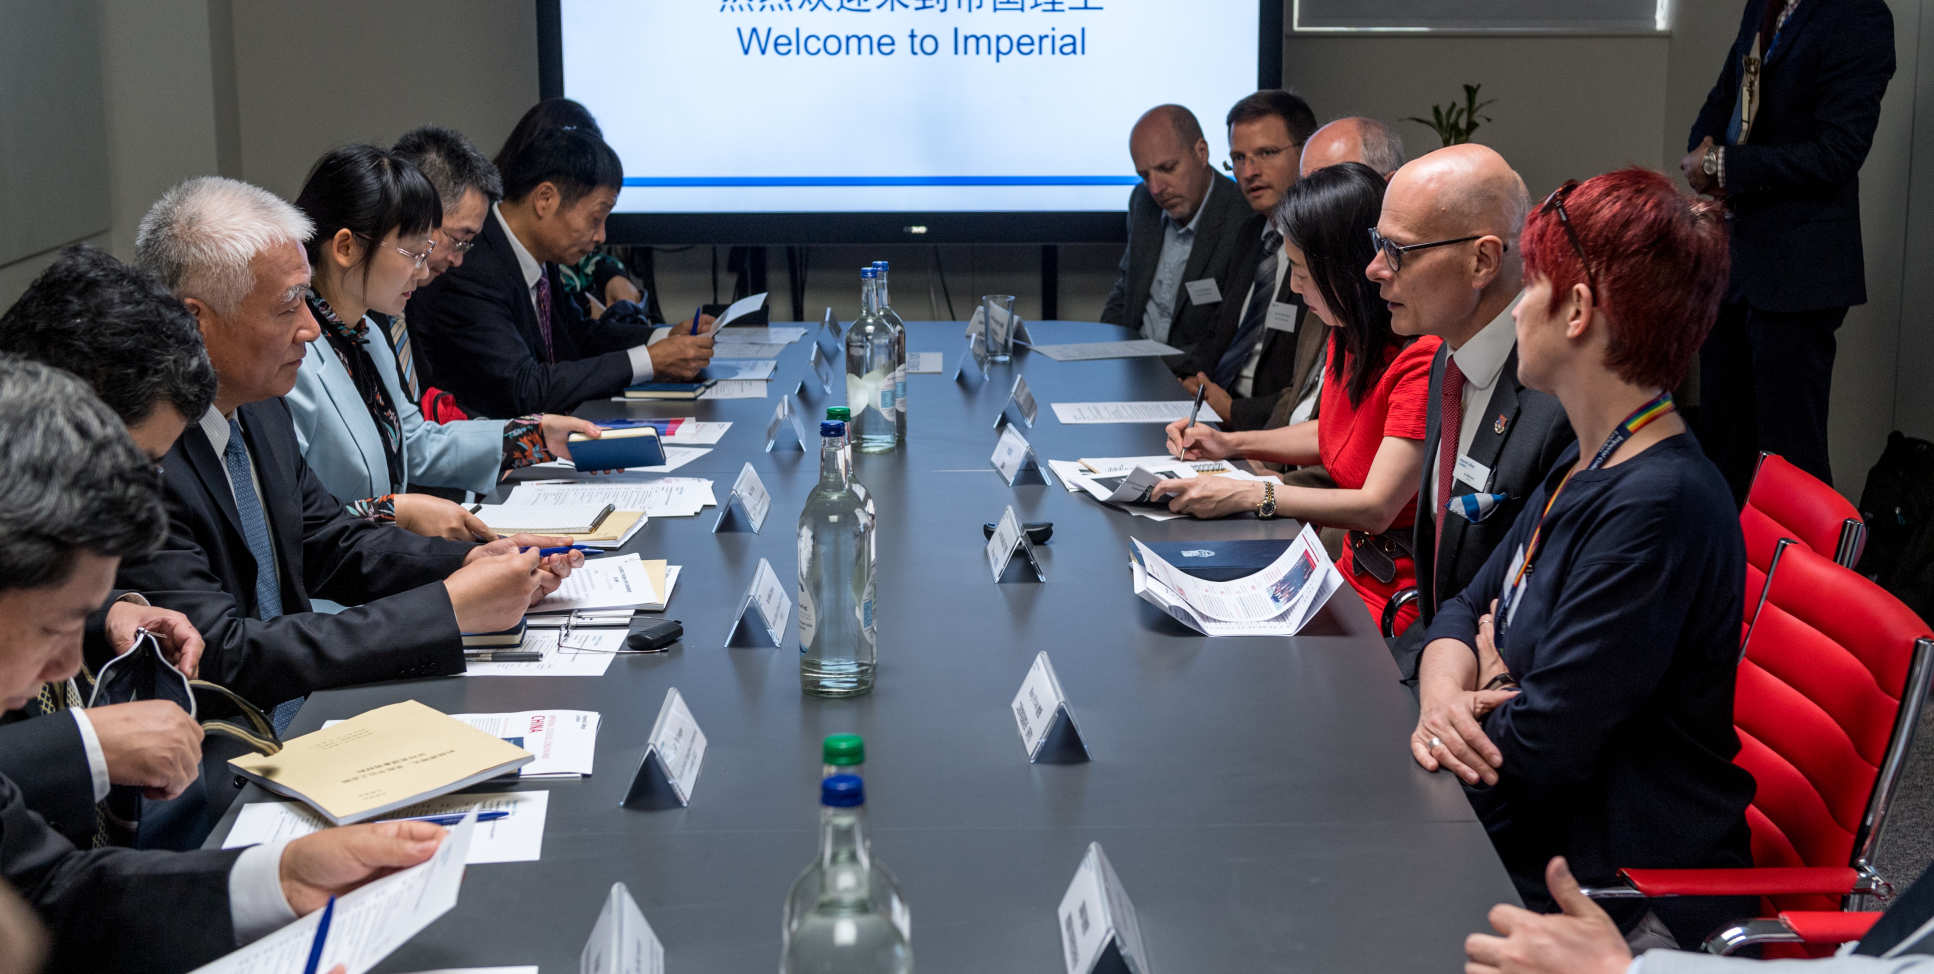 Minister Wang with Imperial academics